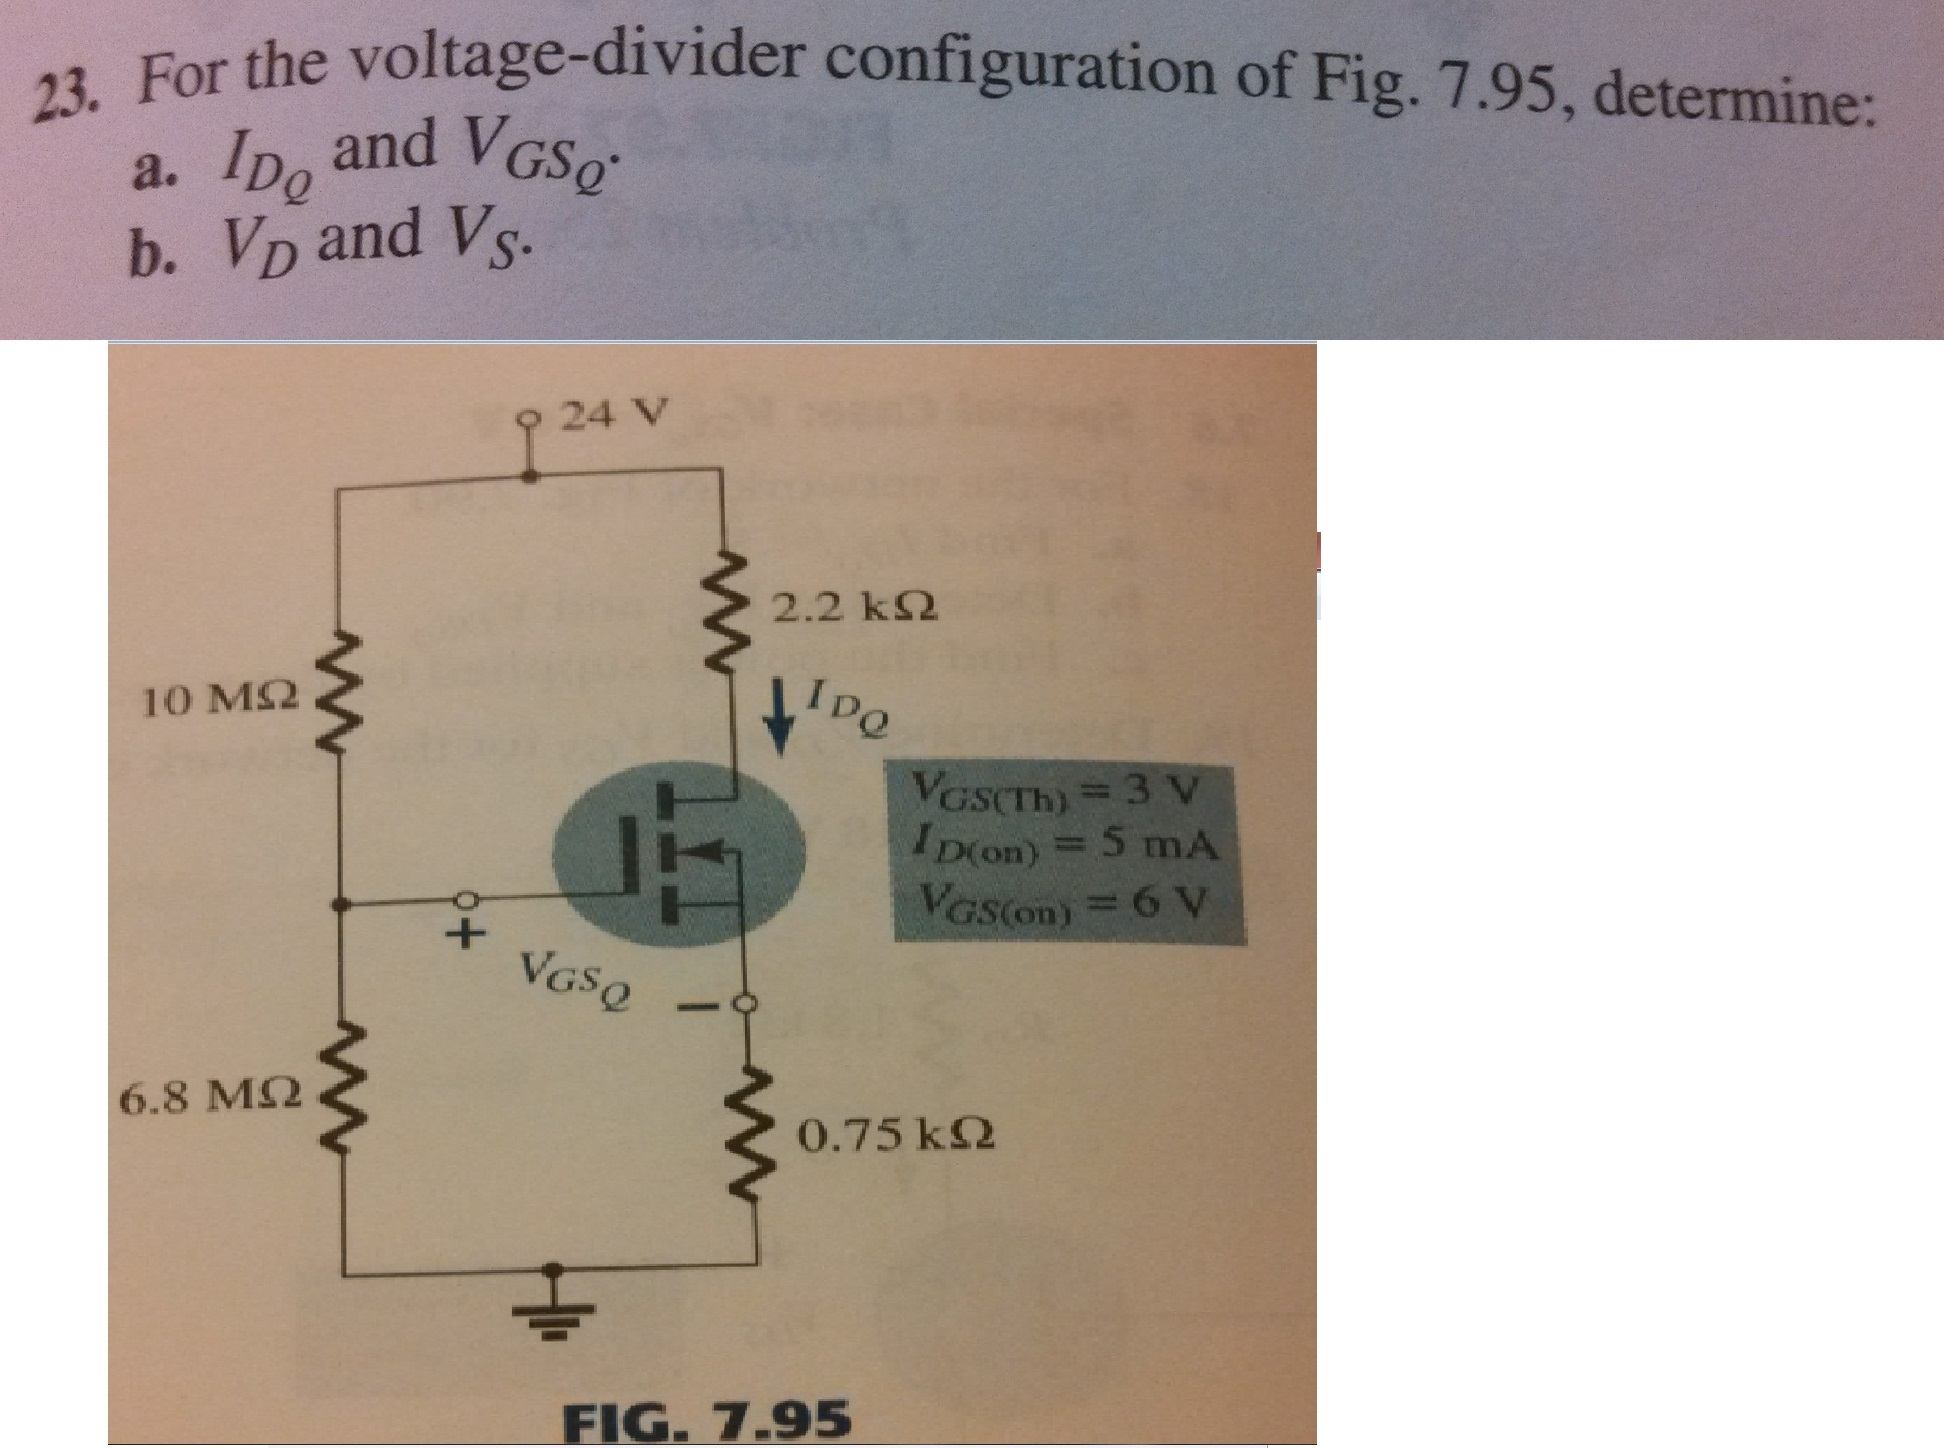 For the voltage-divider configuration of Fig. 7.95